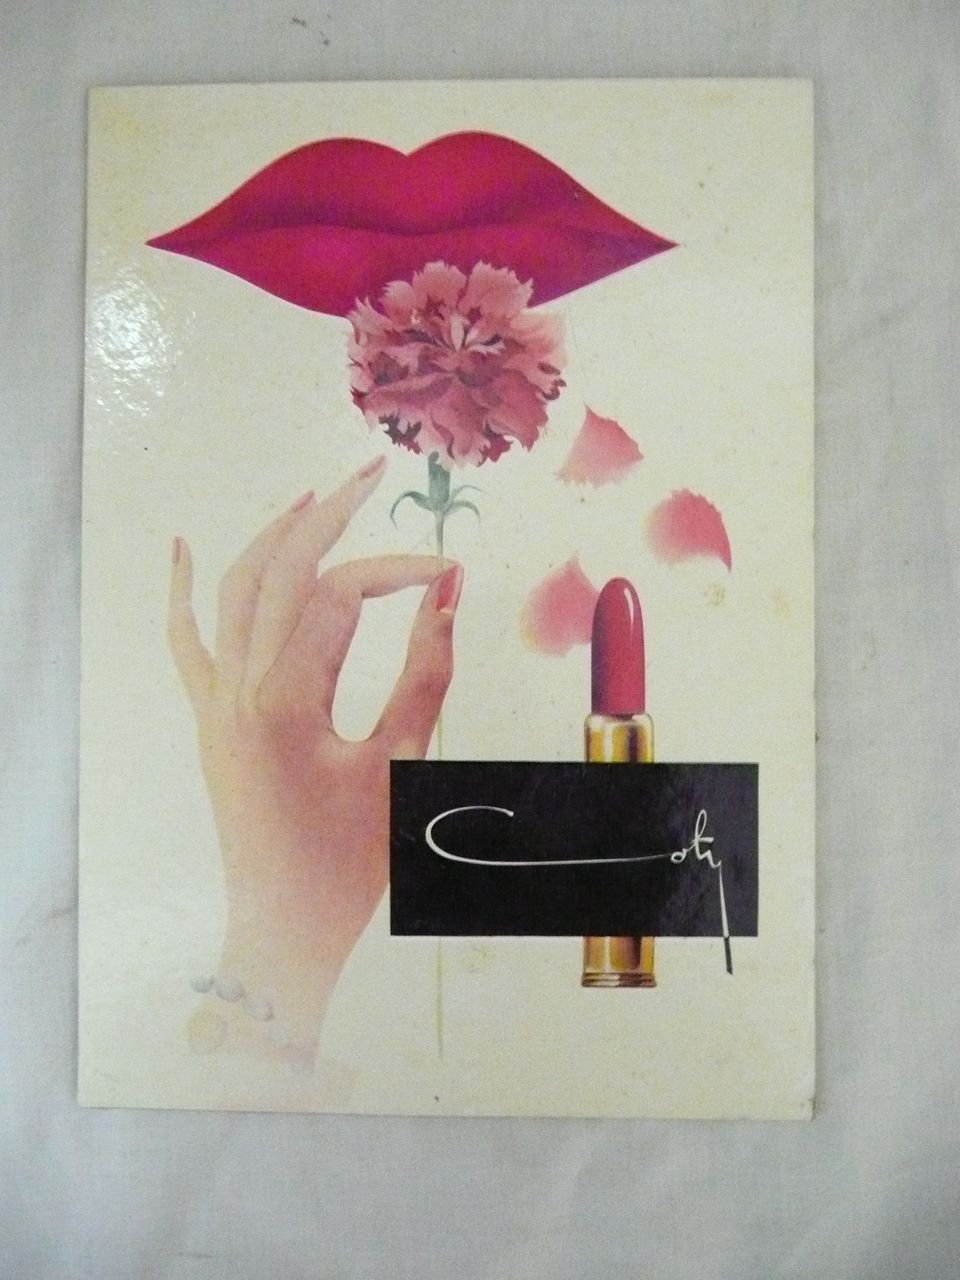 Old COTY Advertising Display Card Circa 1960's